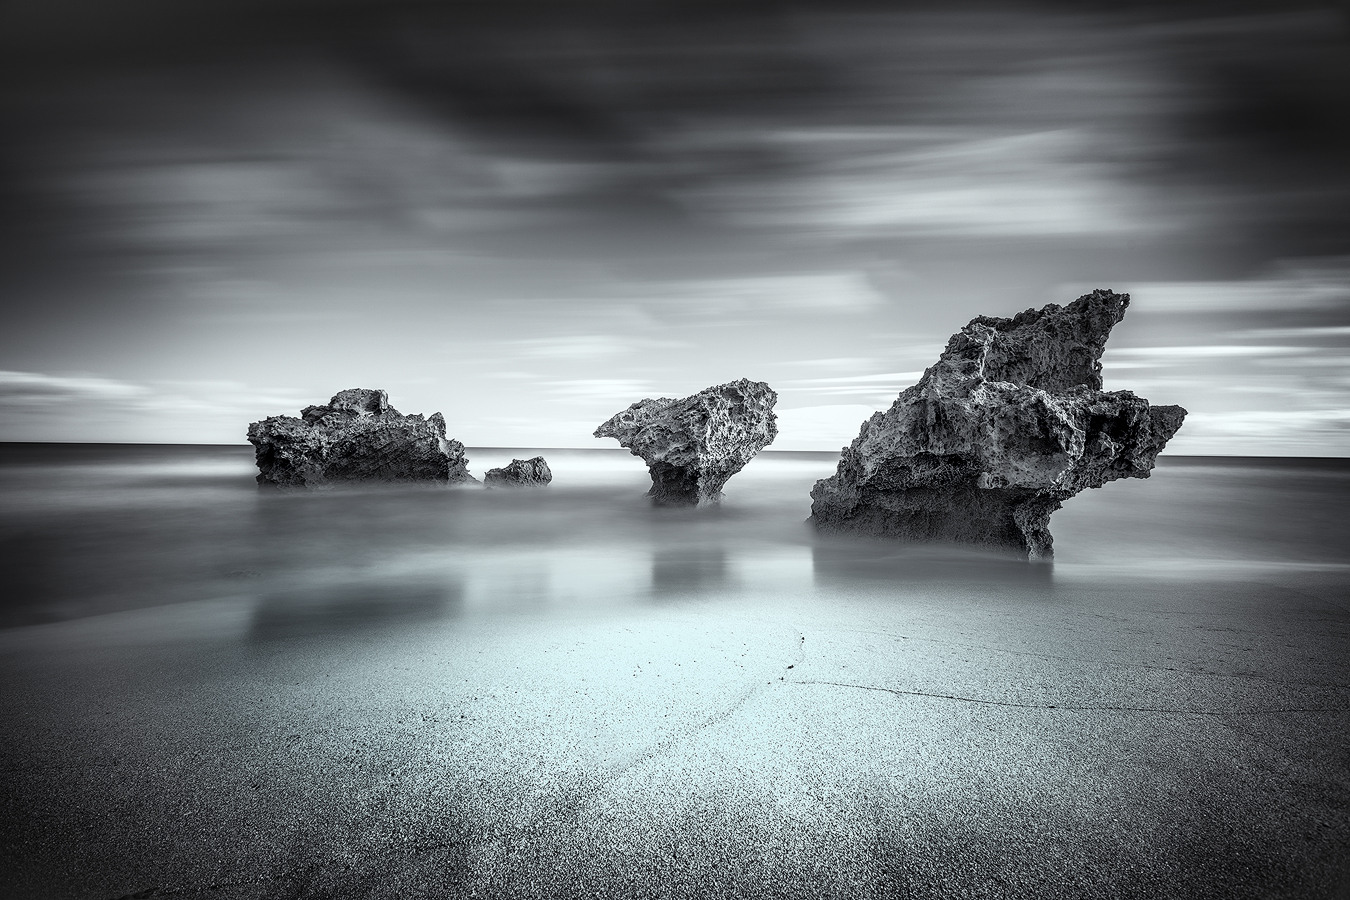 Landscape and Long Exposure Photography |Mornington Peninsula, Blairgowrie